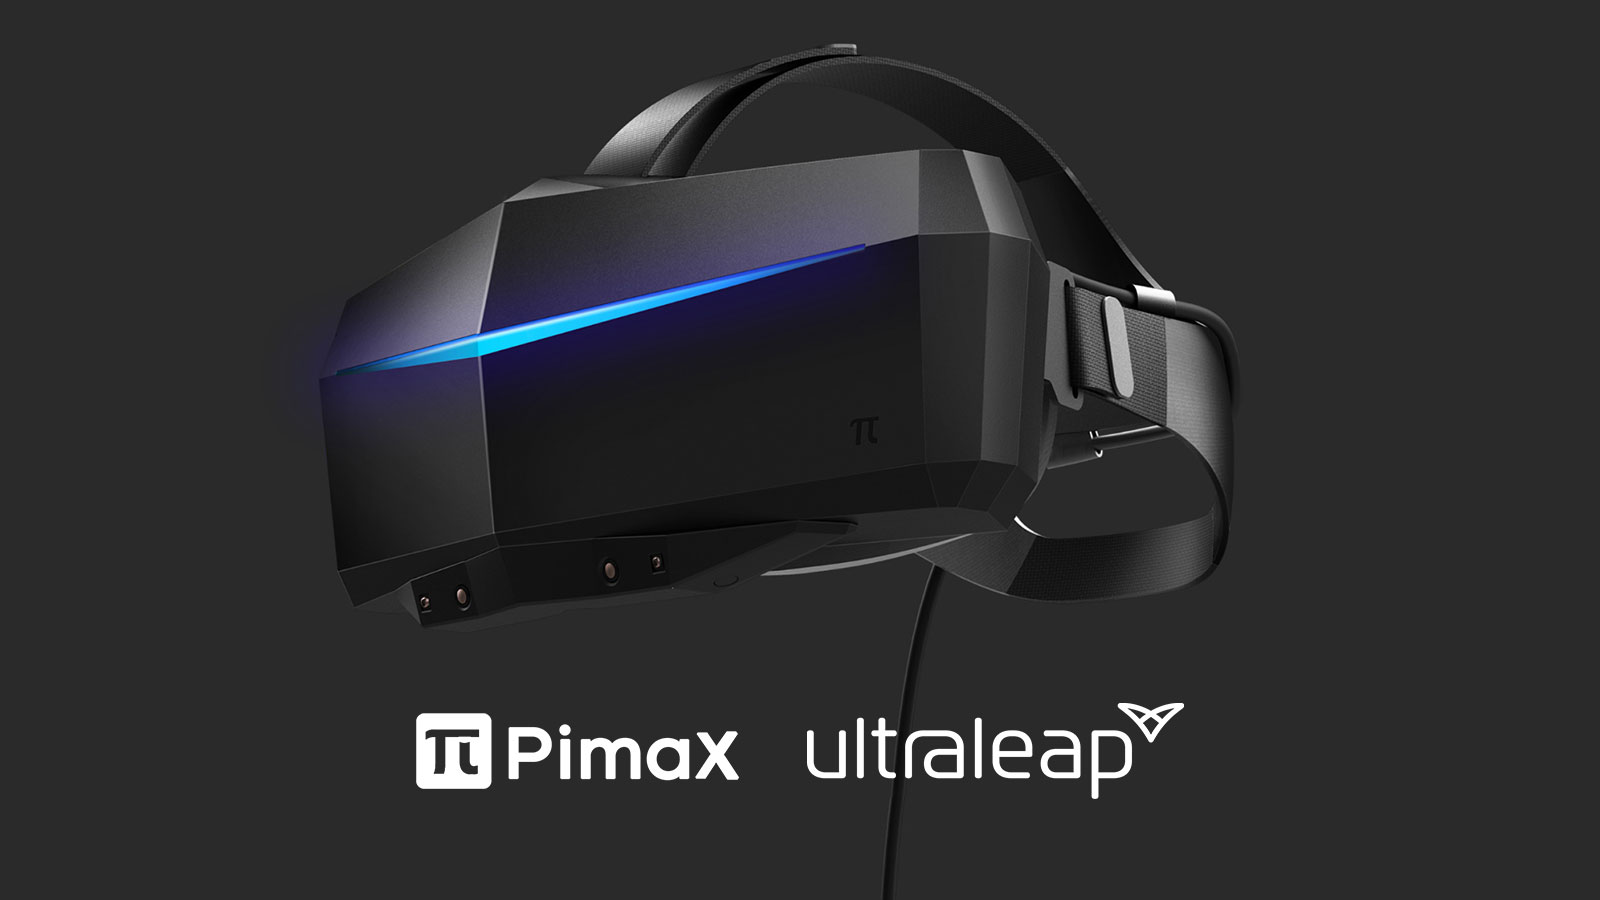 Pimax Ultraleap Hand Tracking